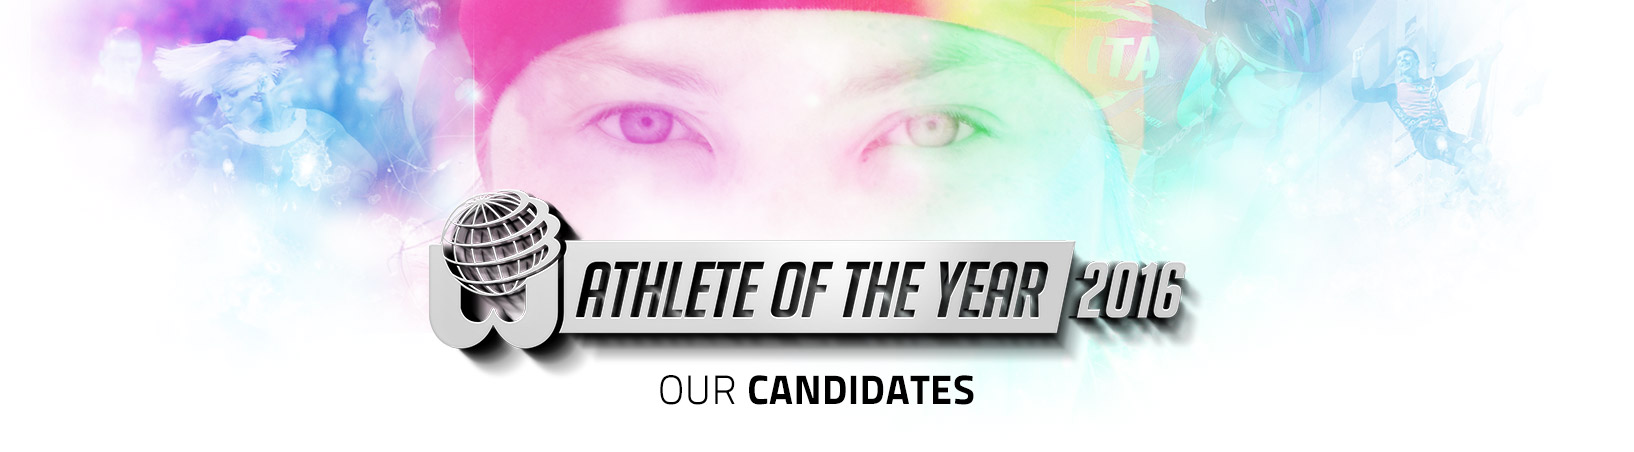 Athlete of the year 2016 vote banner